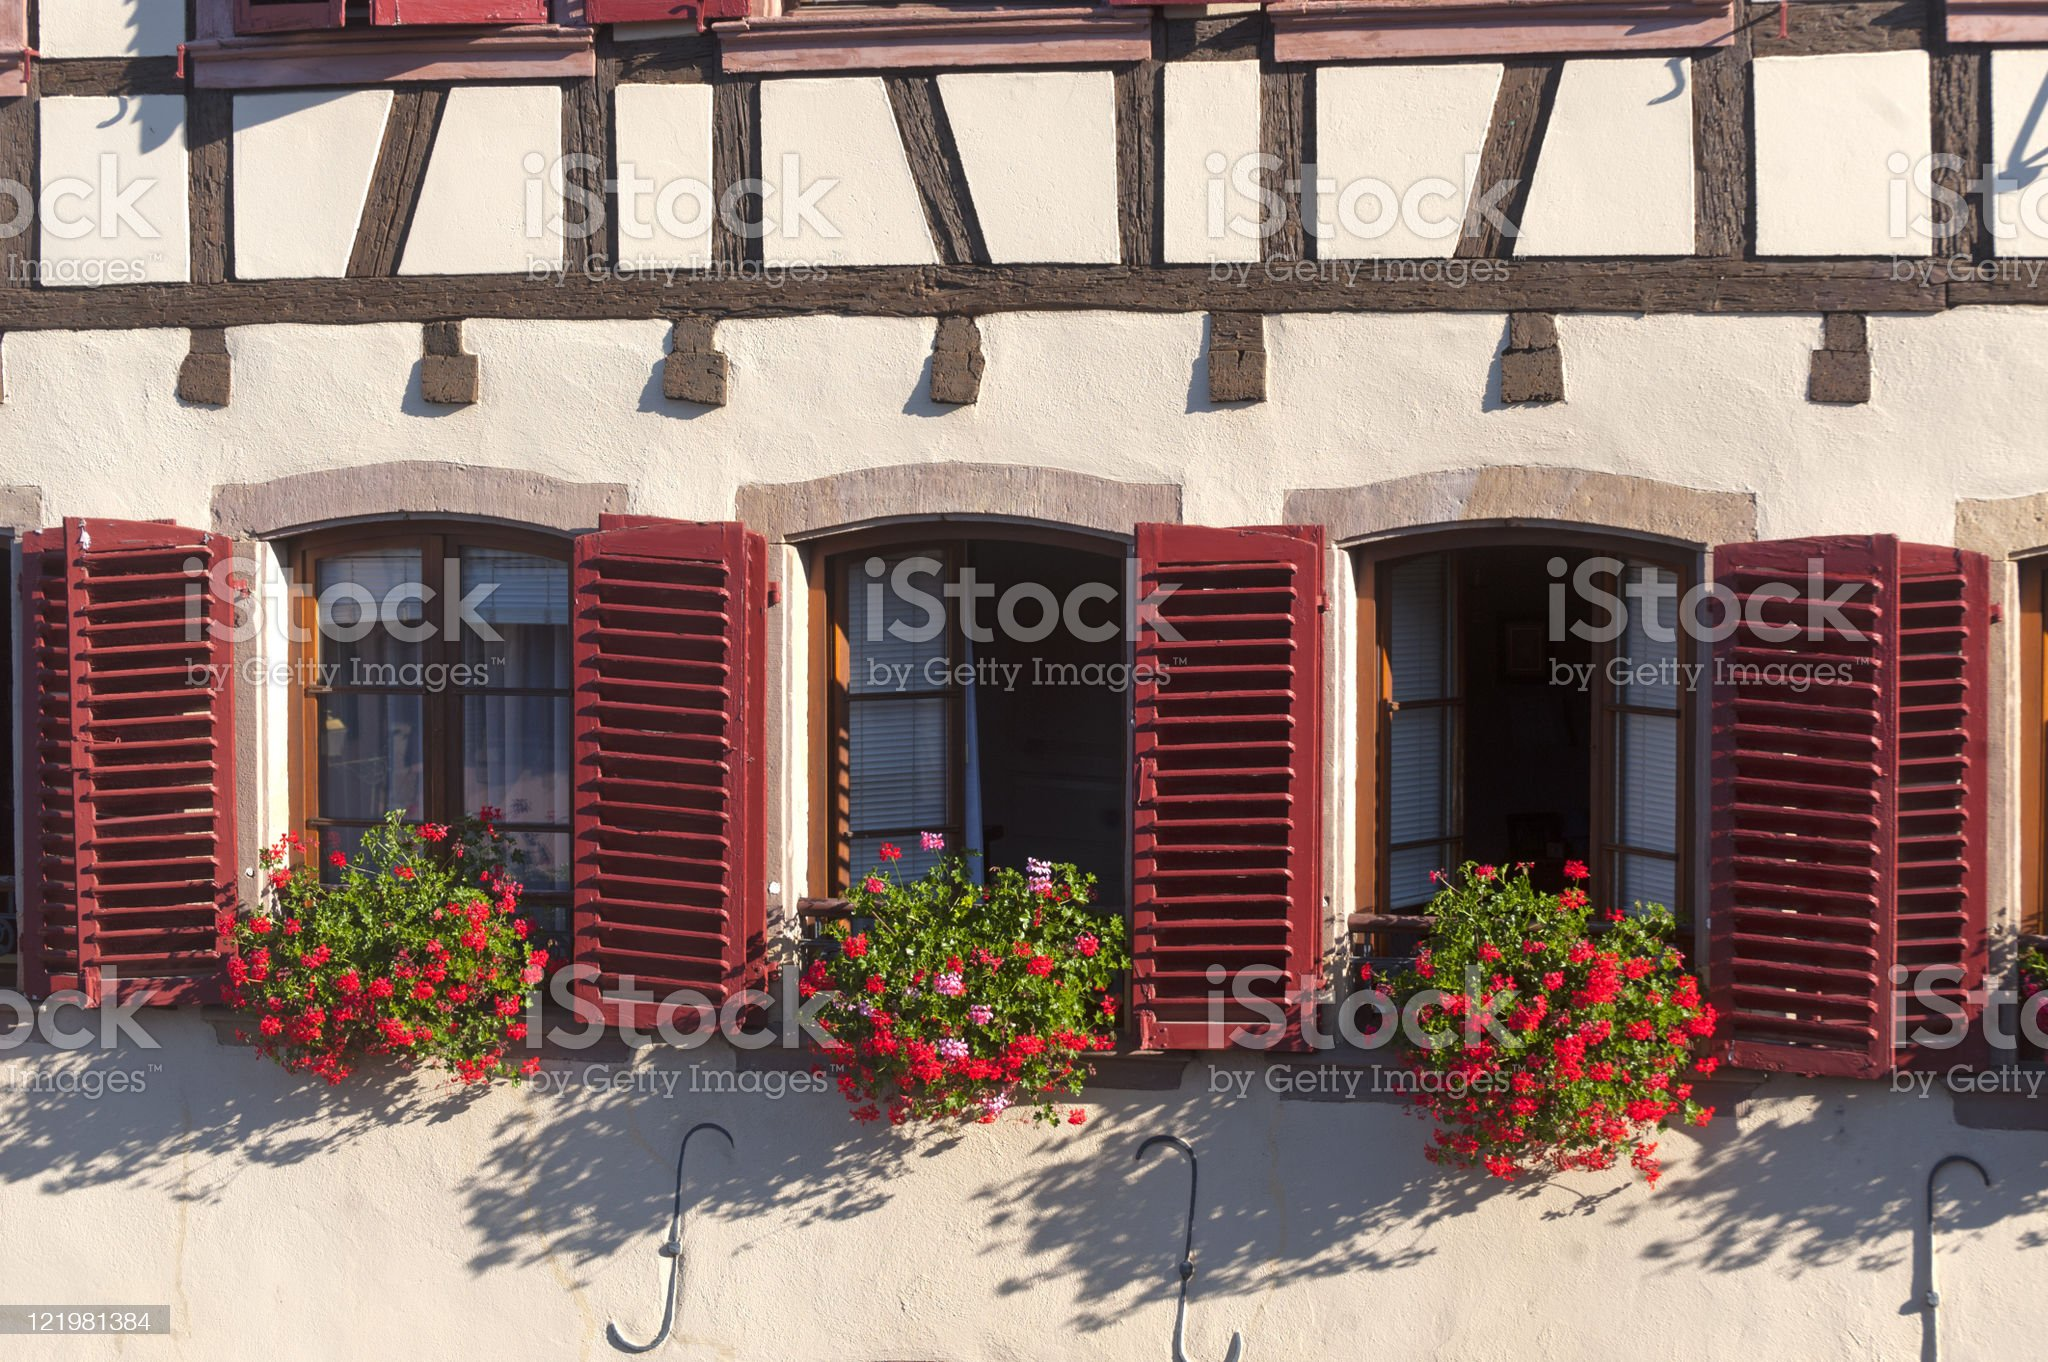 Barr (Alsace) Three windows with red shutters royalty-free stock photo